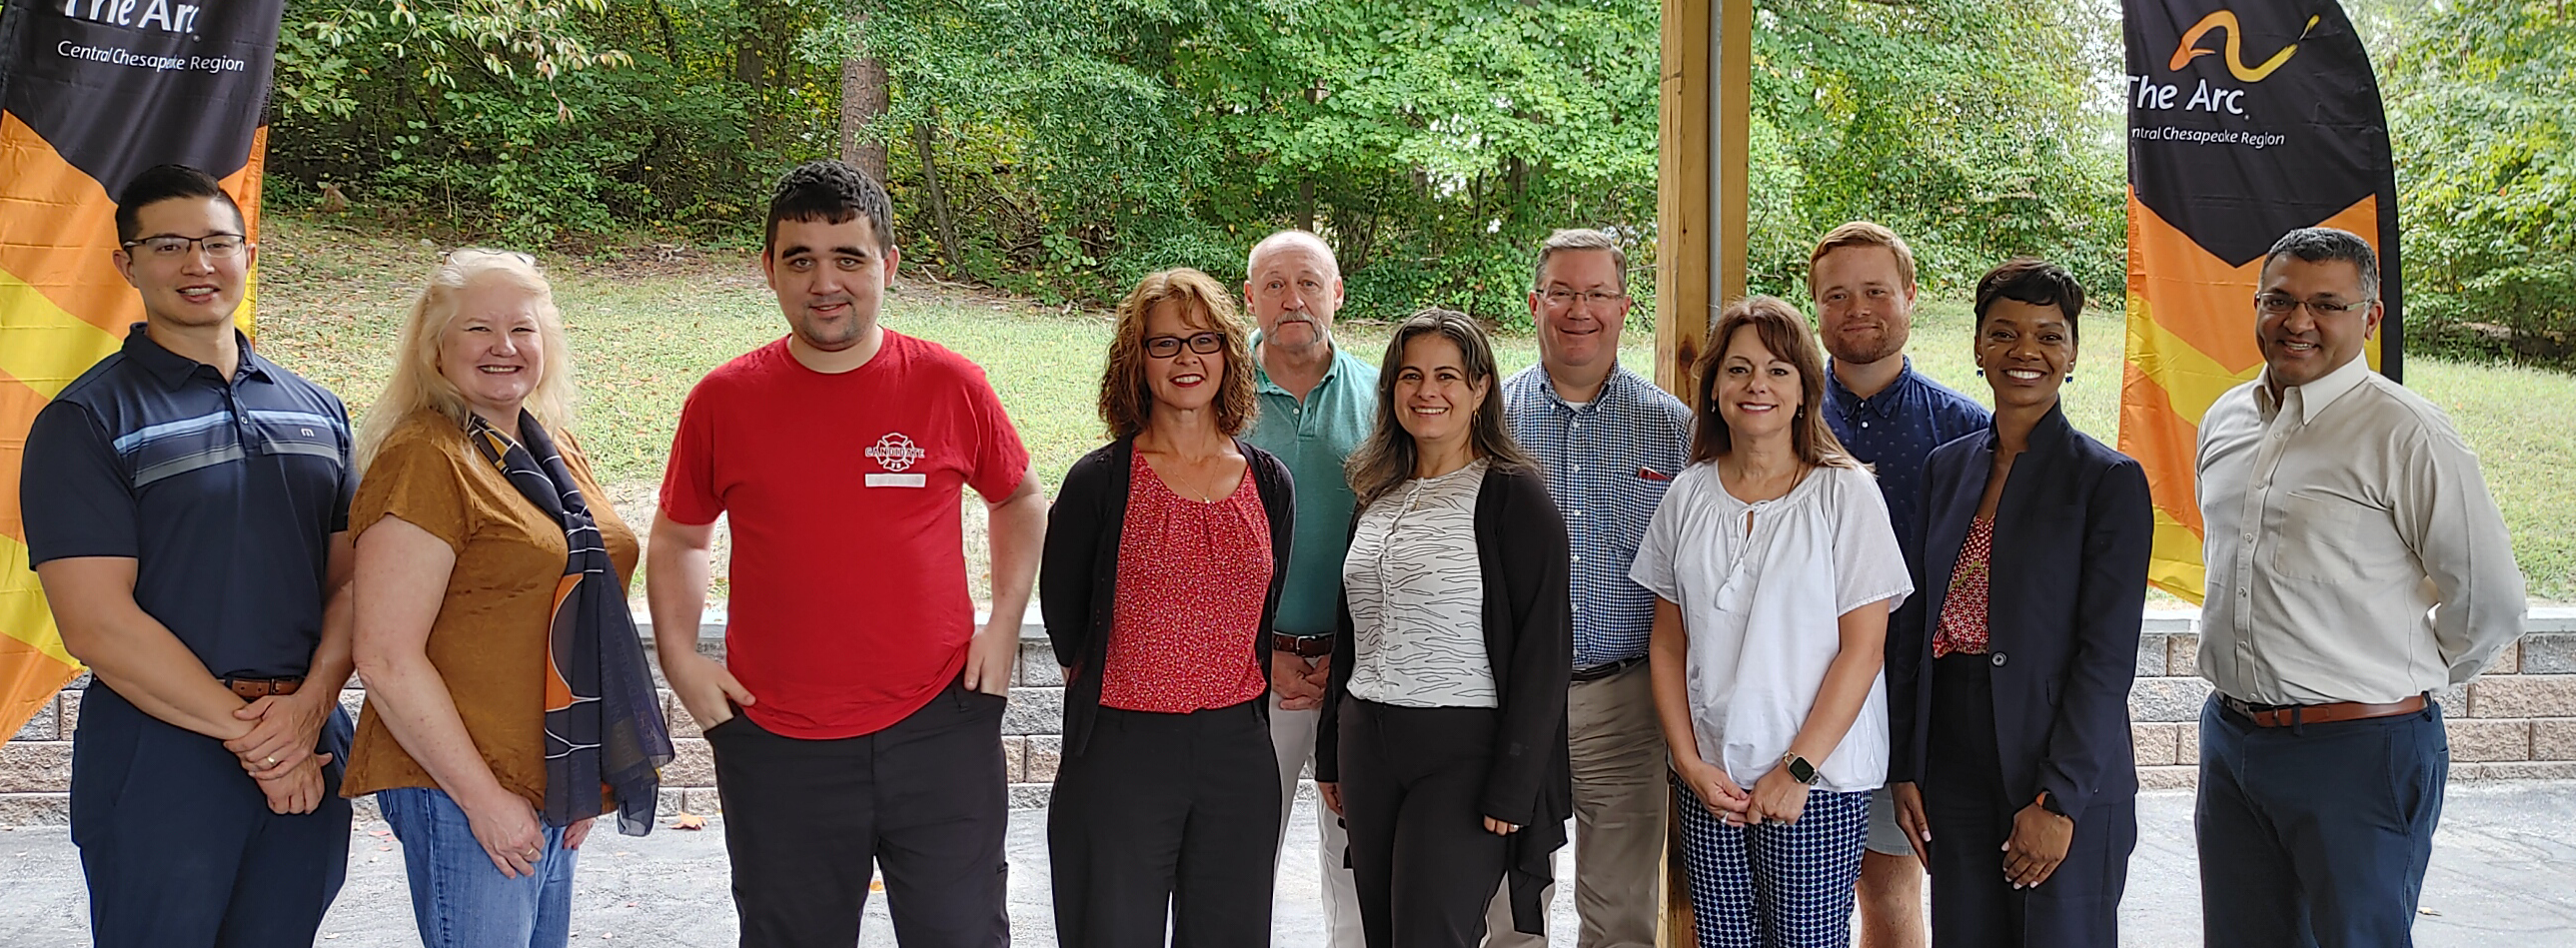 Picture of The Arc's Board of Directors.